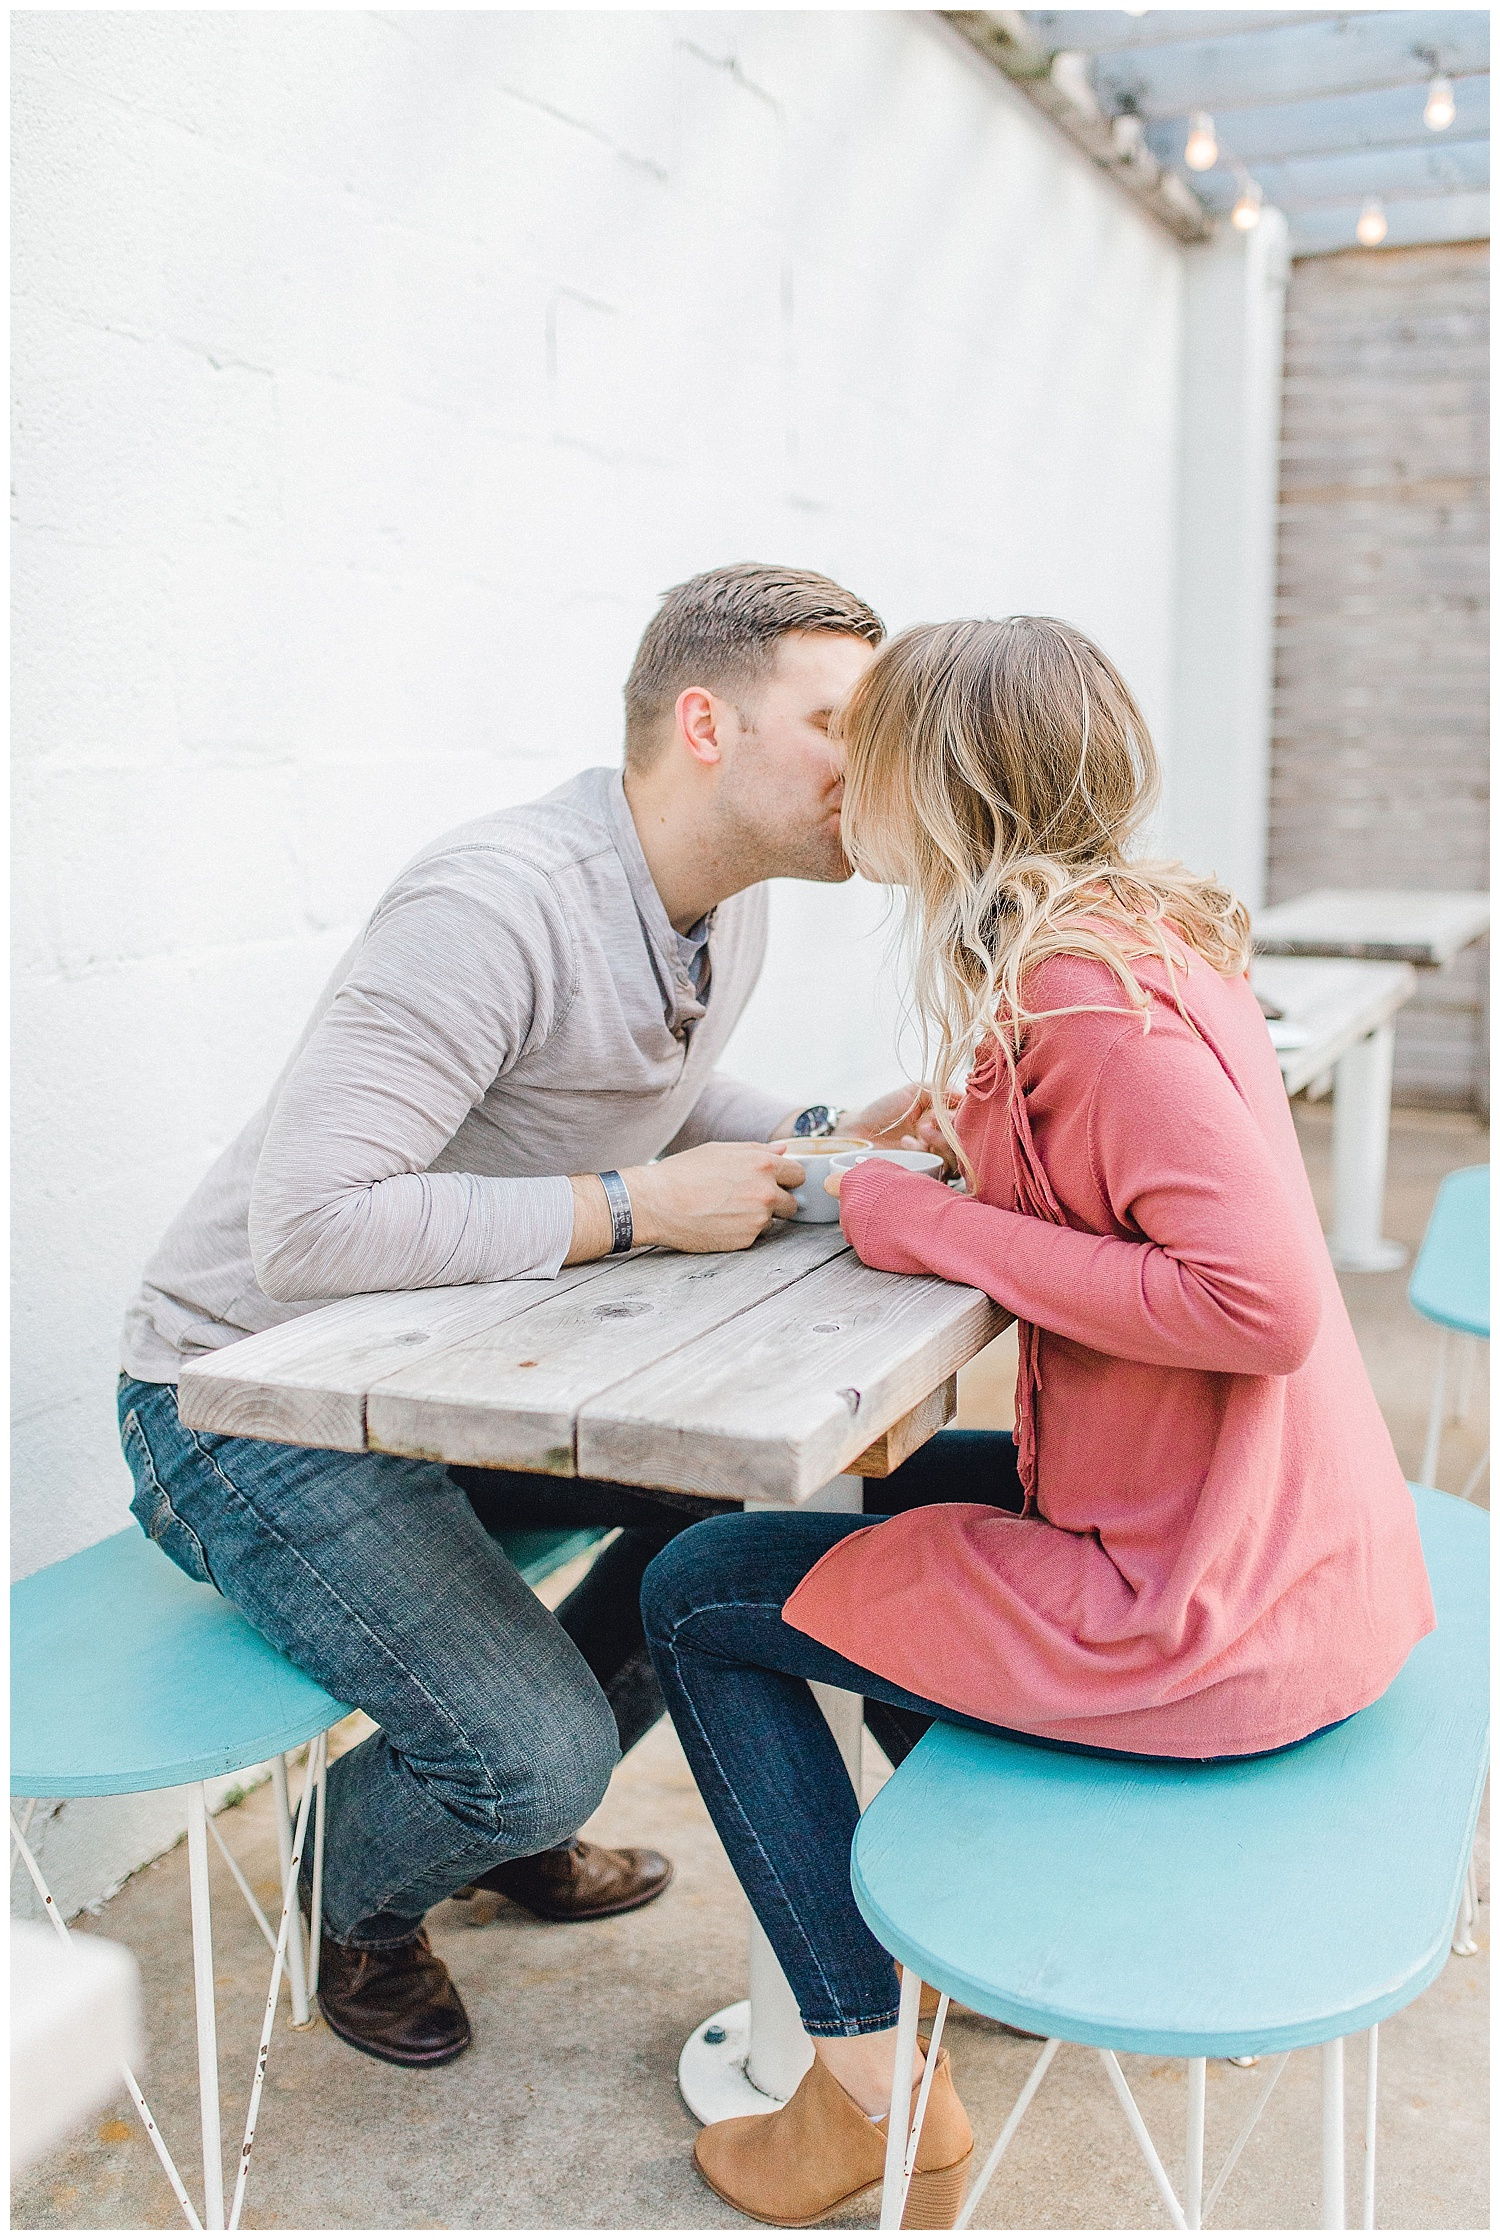 ERC_0933_Downtown Nashville Engagement Session at Barista Parlor   Emma Rose Company Wedding Photographer   Outfit Inspiration for Engagement Session   Kindred Light and Airy Photographer.jpg